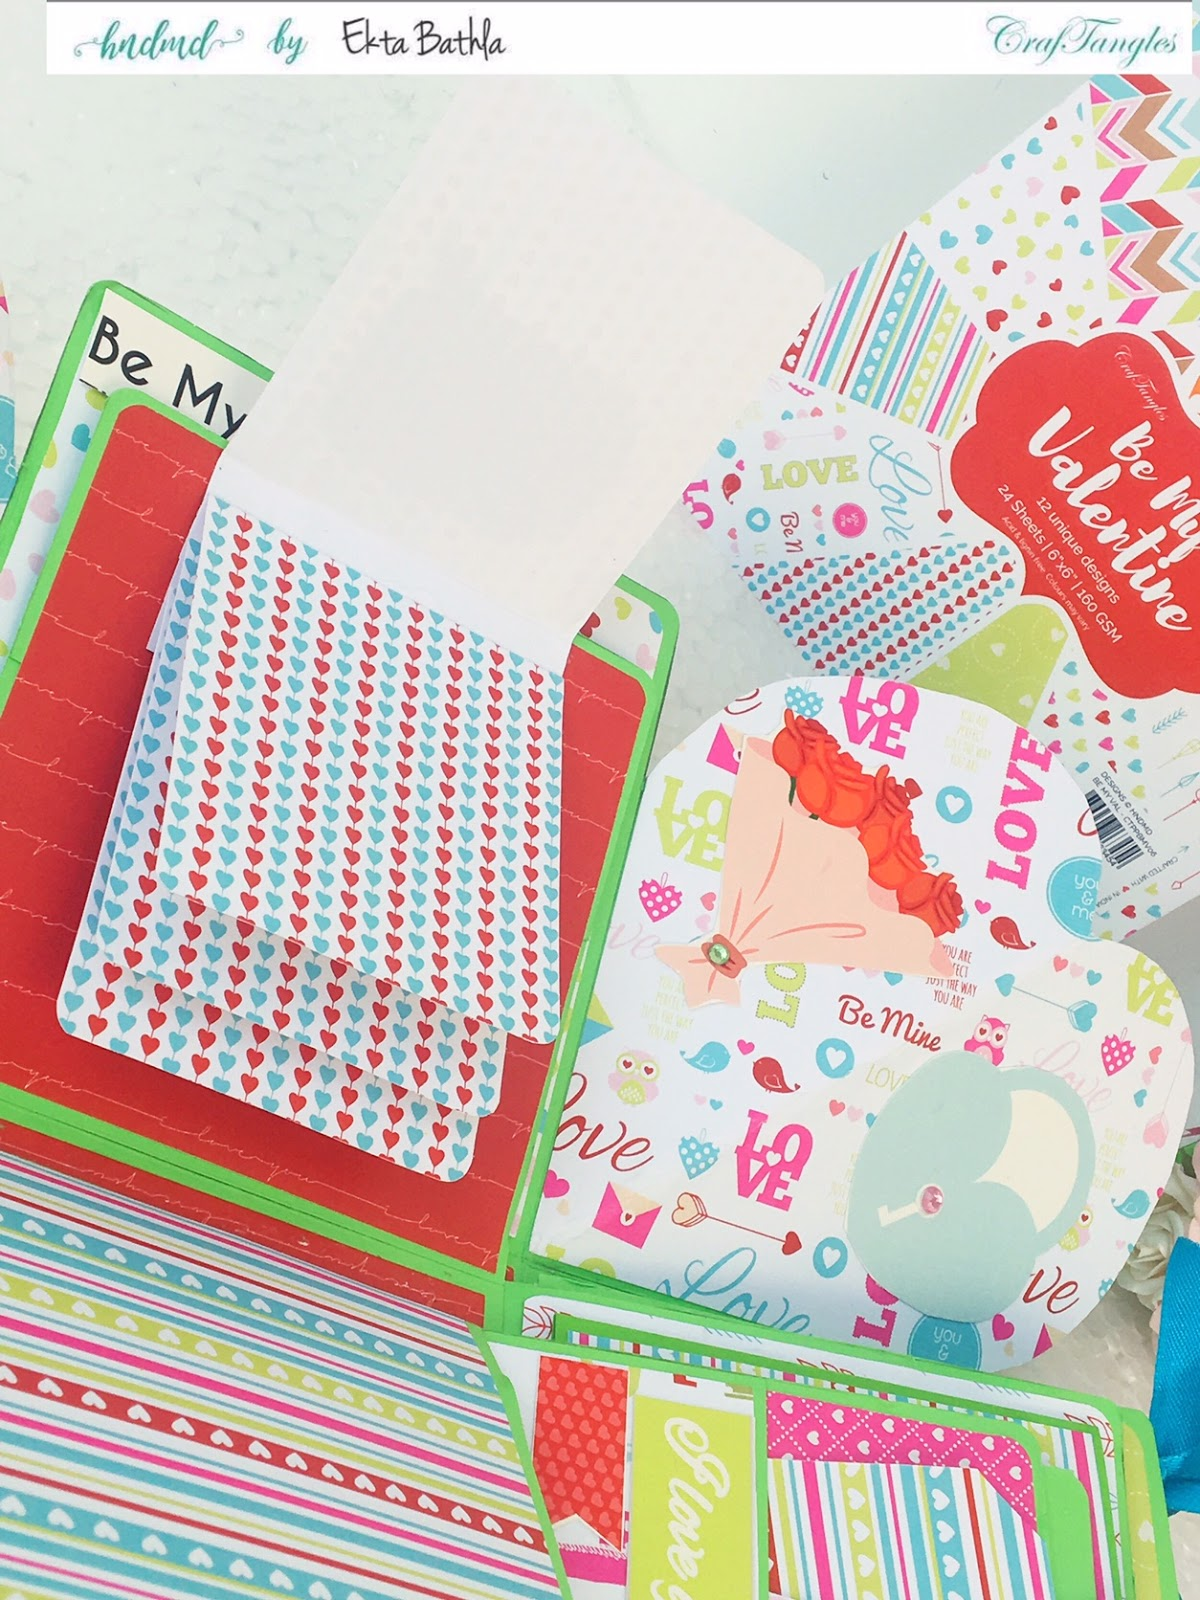 Love themed explosion box using CrafTangles Be My Valentine paper and element packs 2